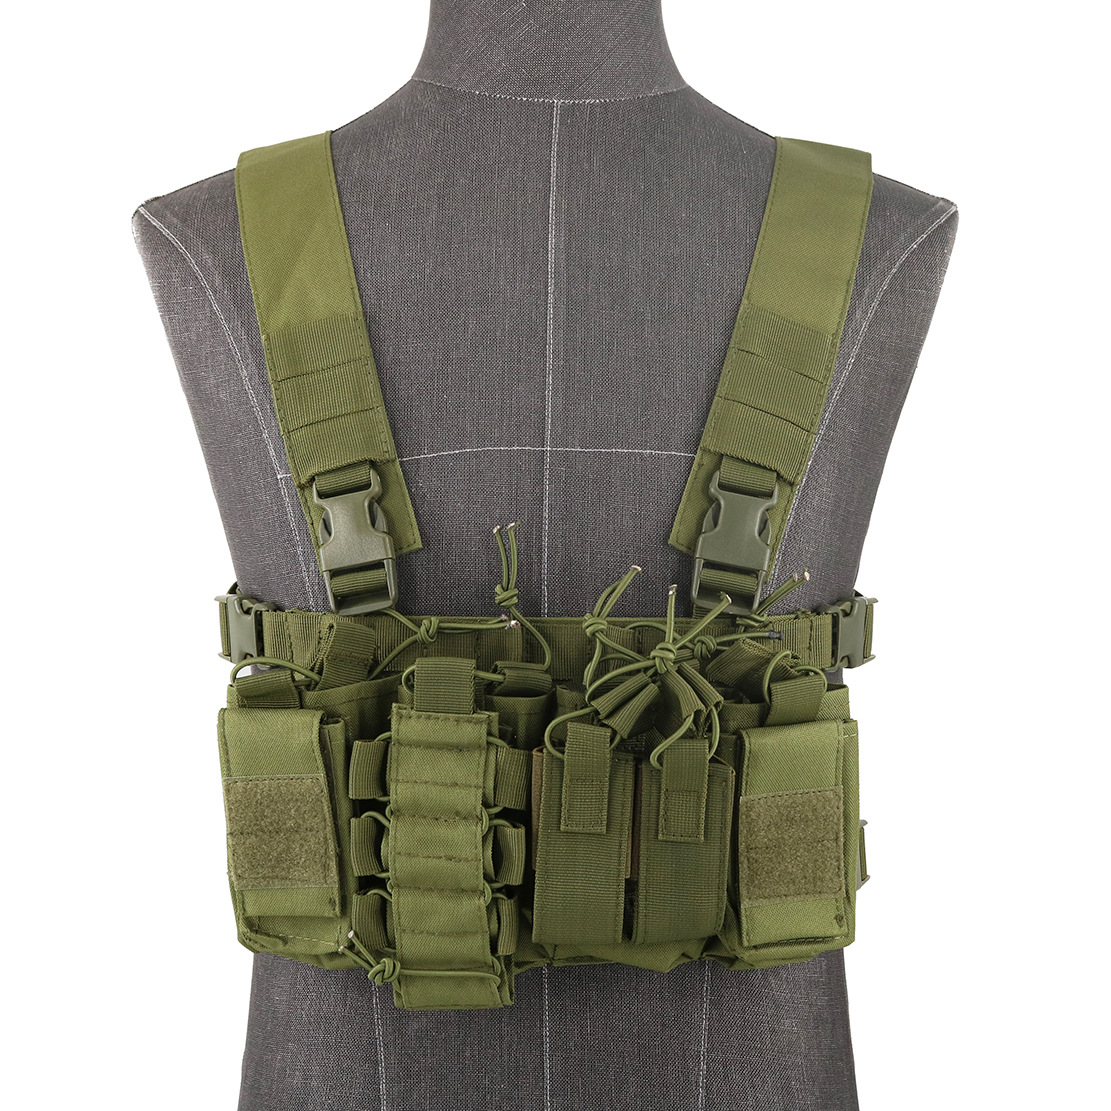 060 tactical chest rig olive green 1